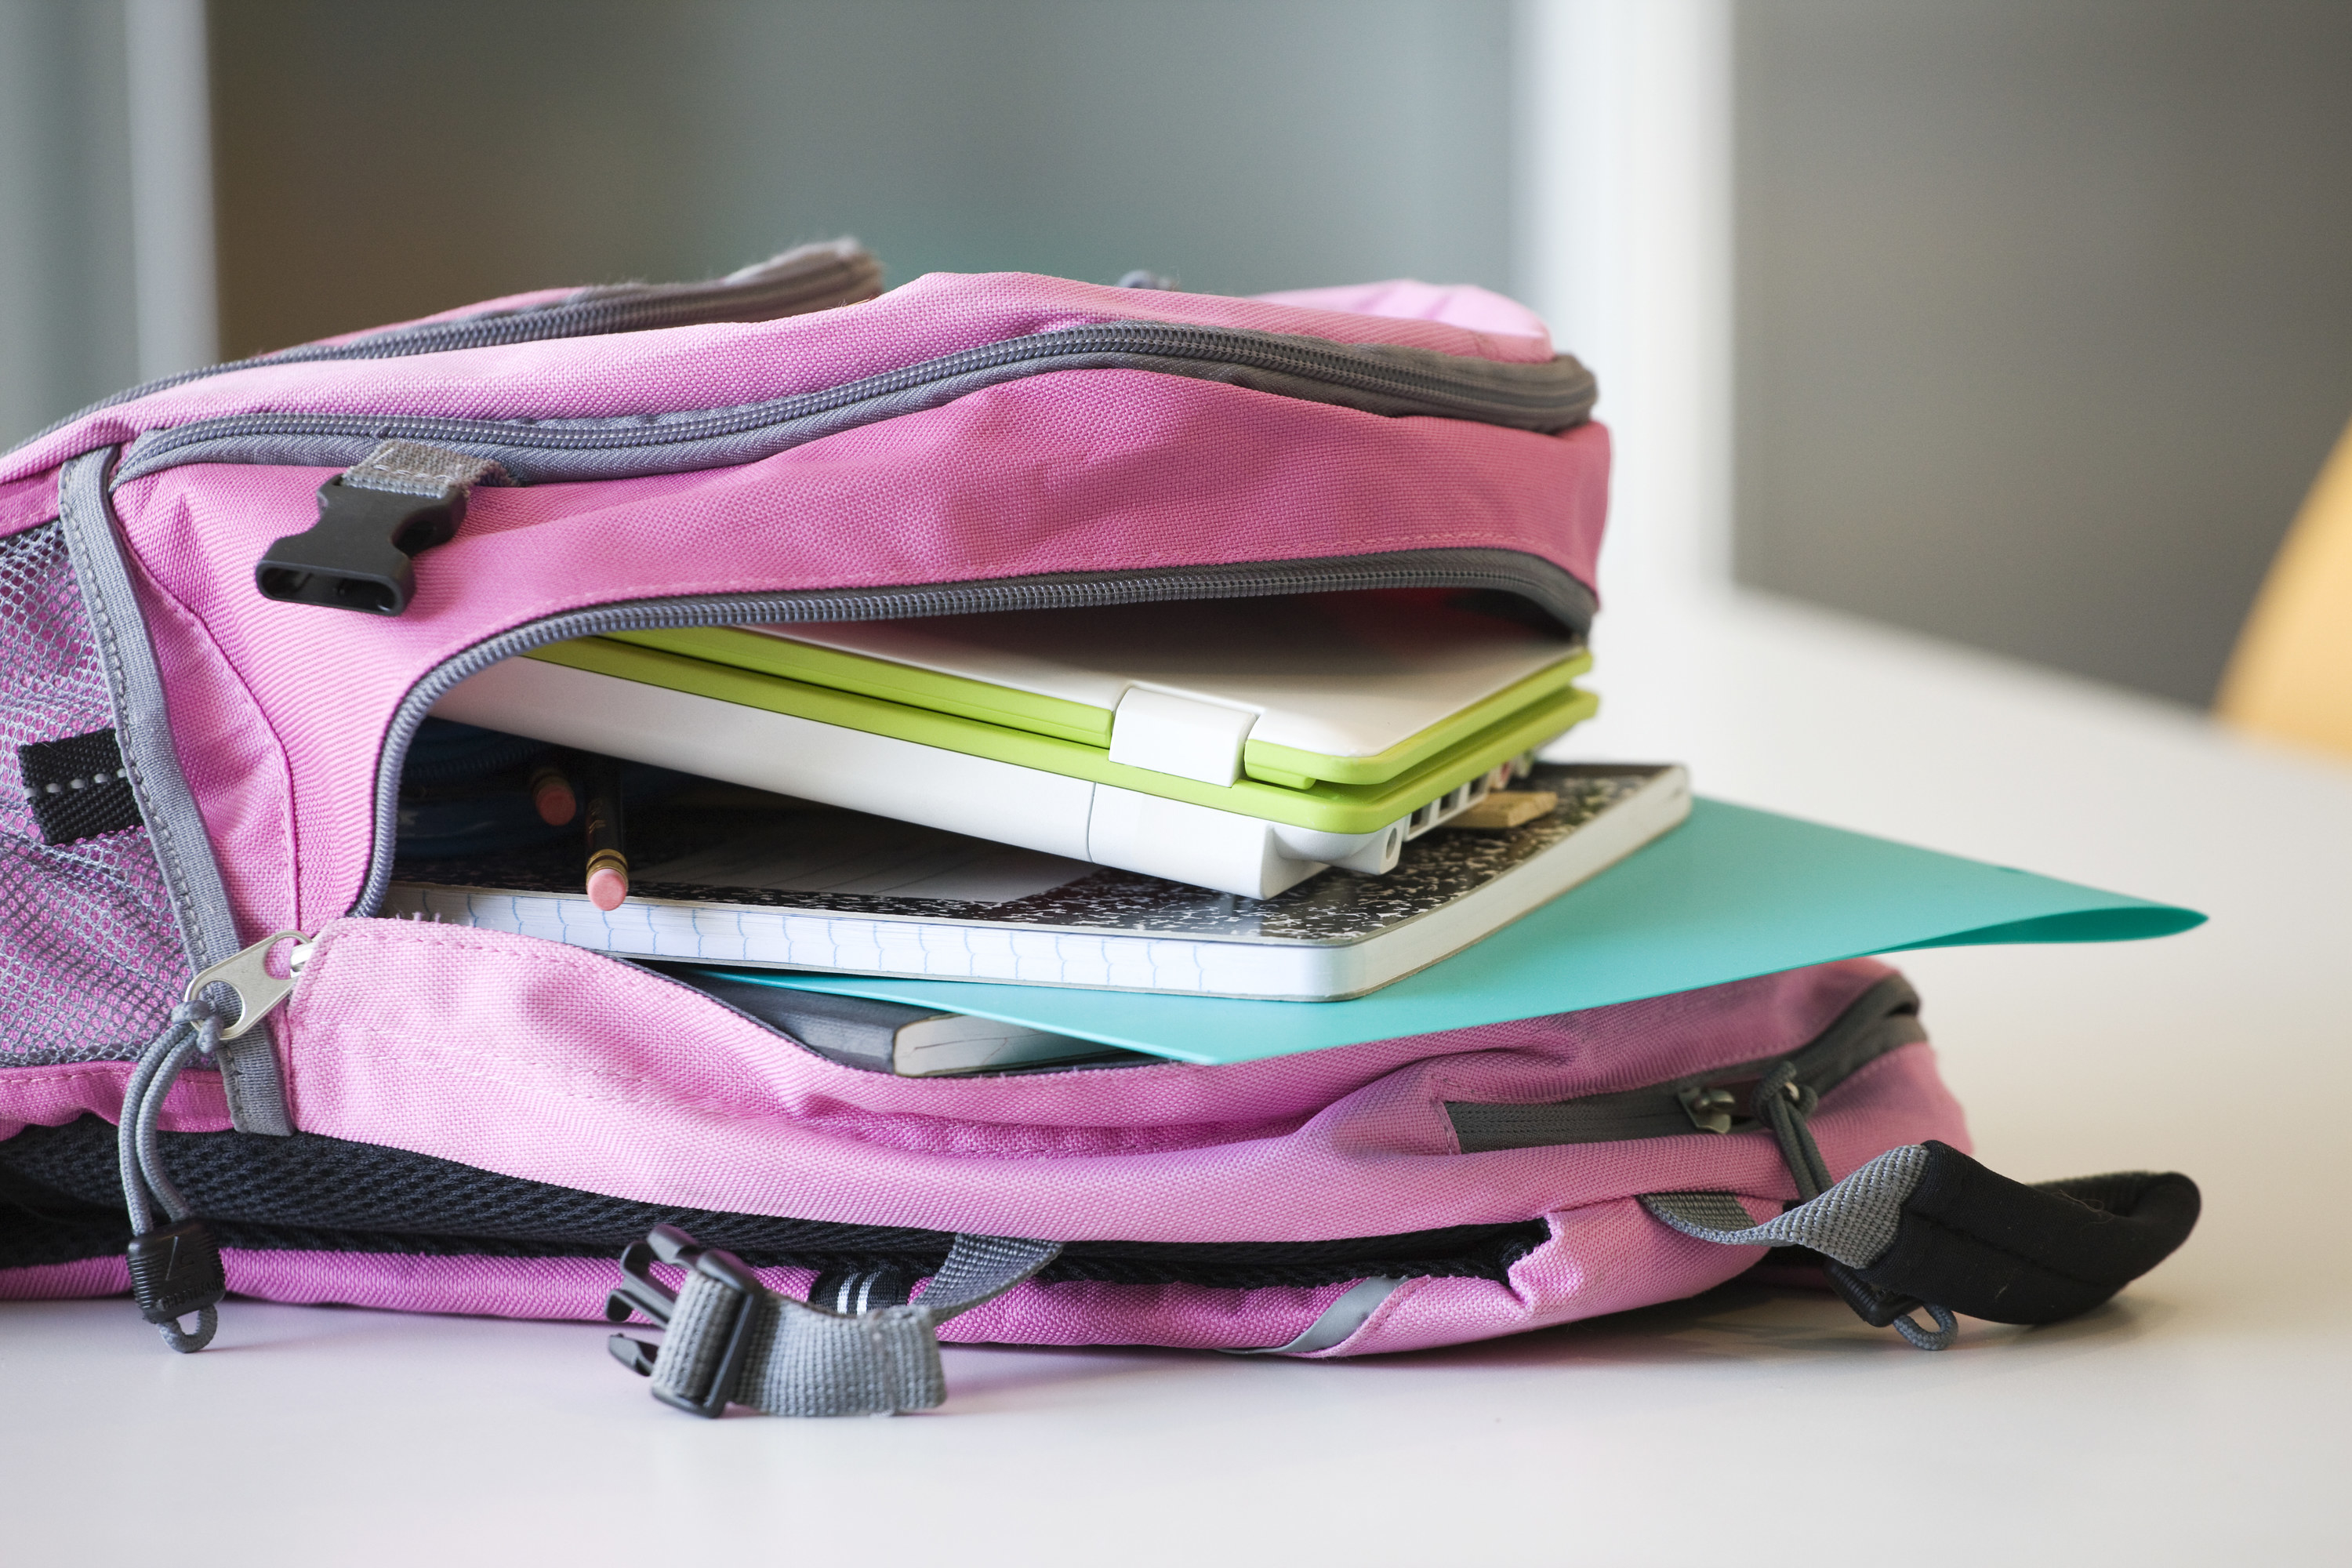 pinkish purple backpack laying on a desk unzipped, showing school supplies inside